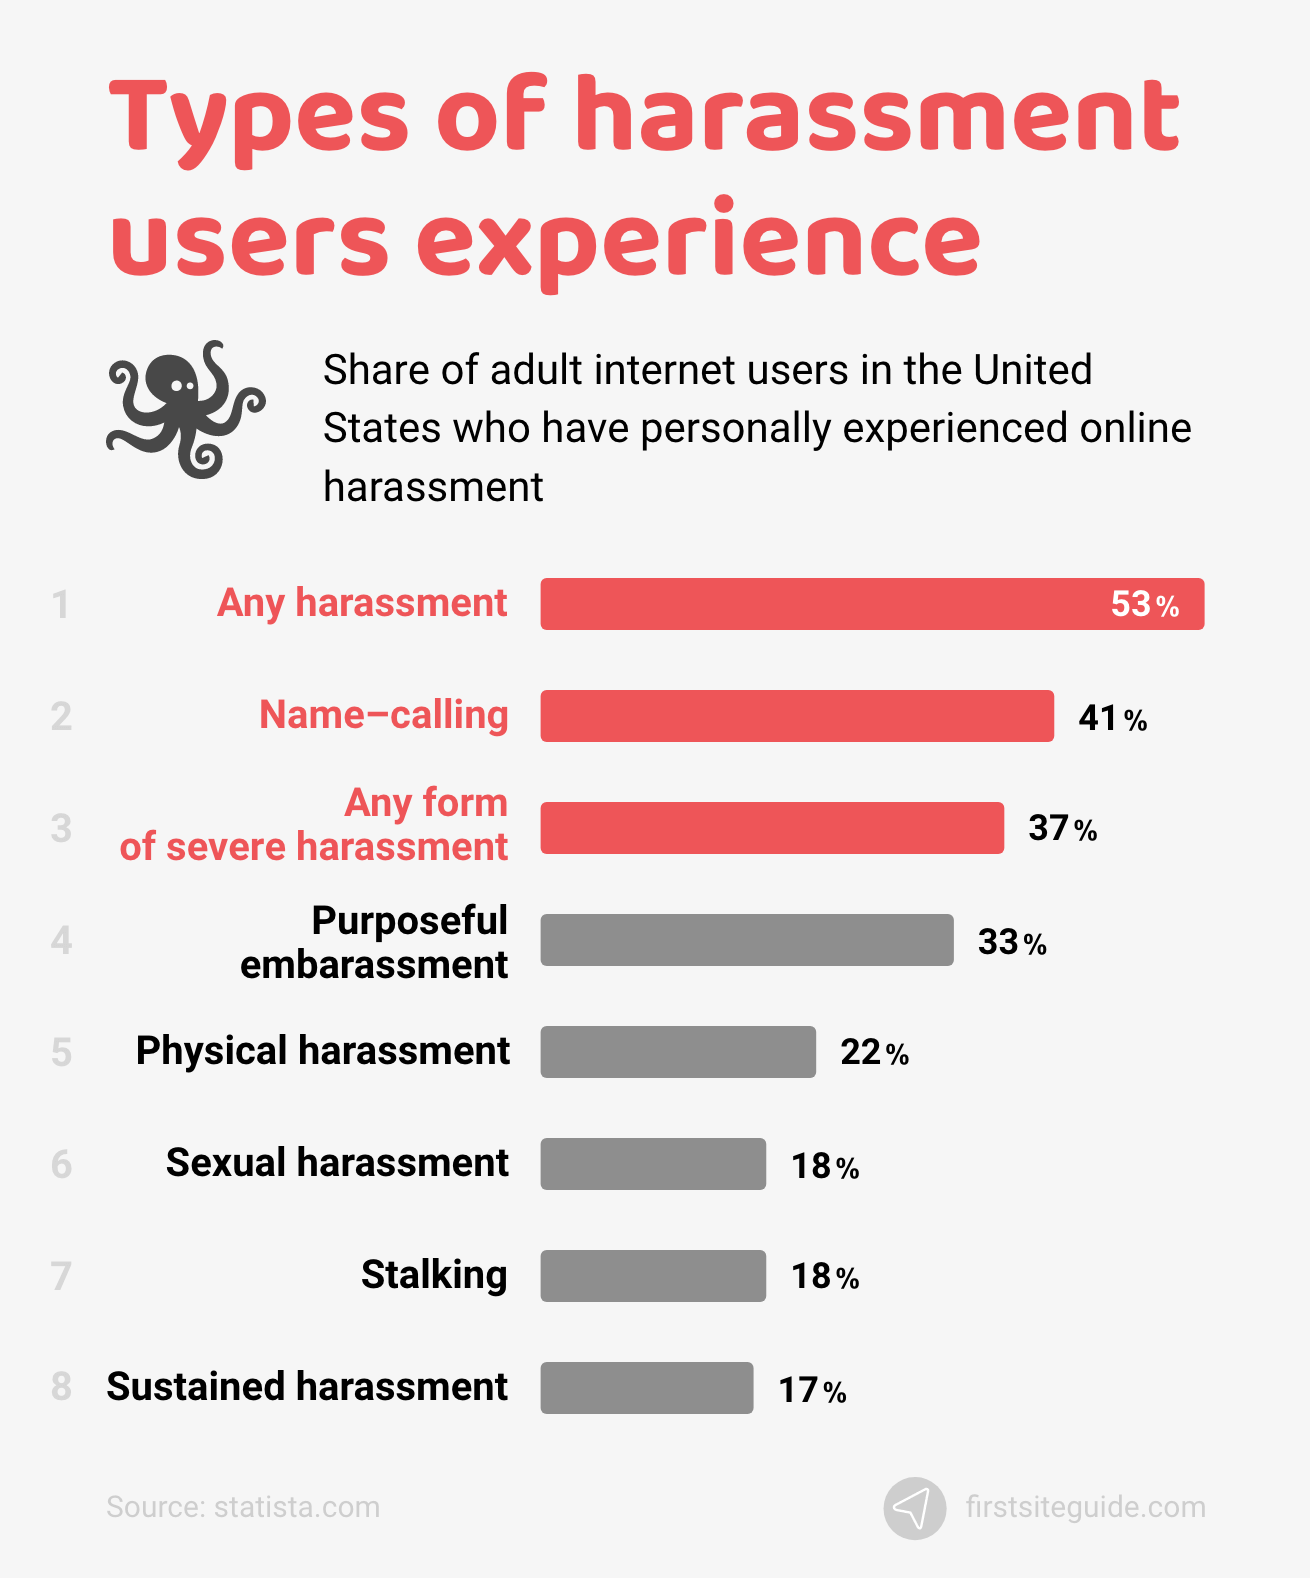 Types of harassment users experience